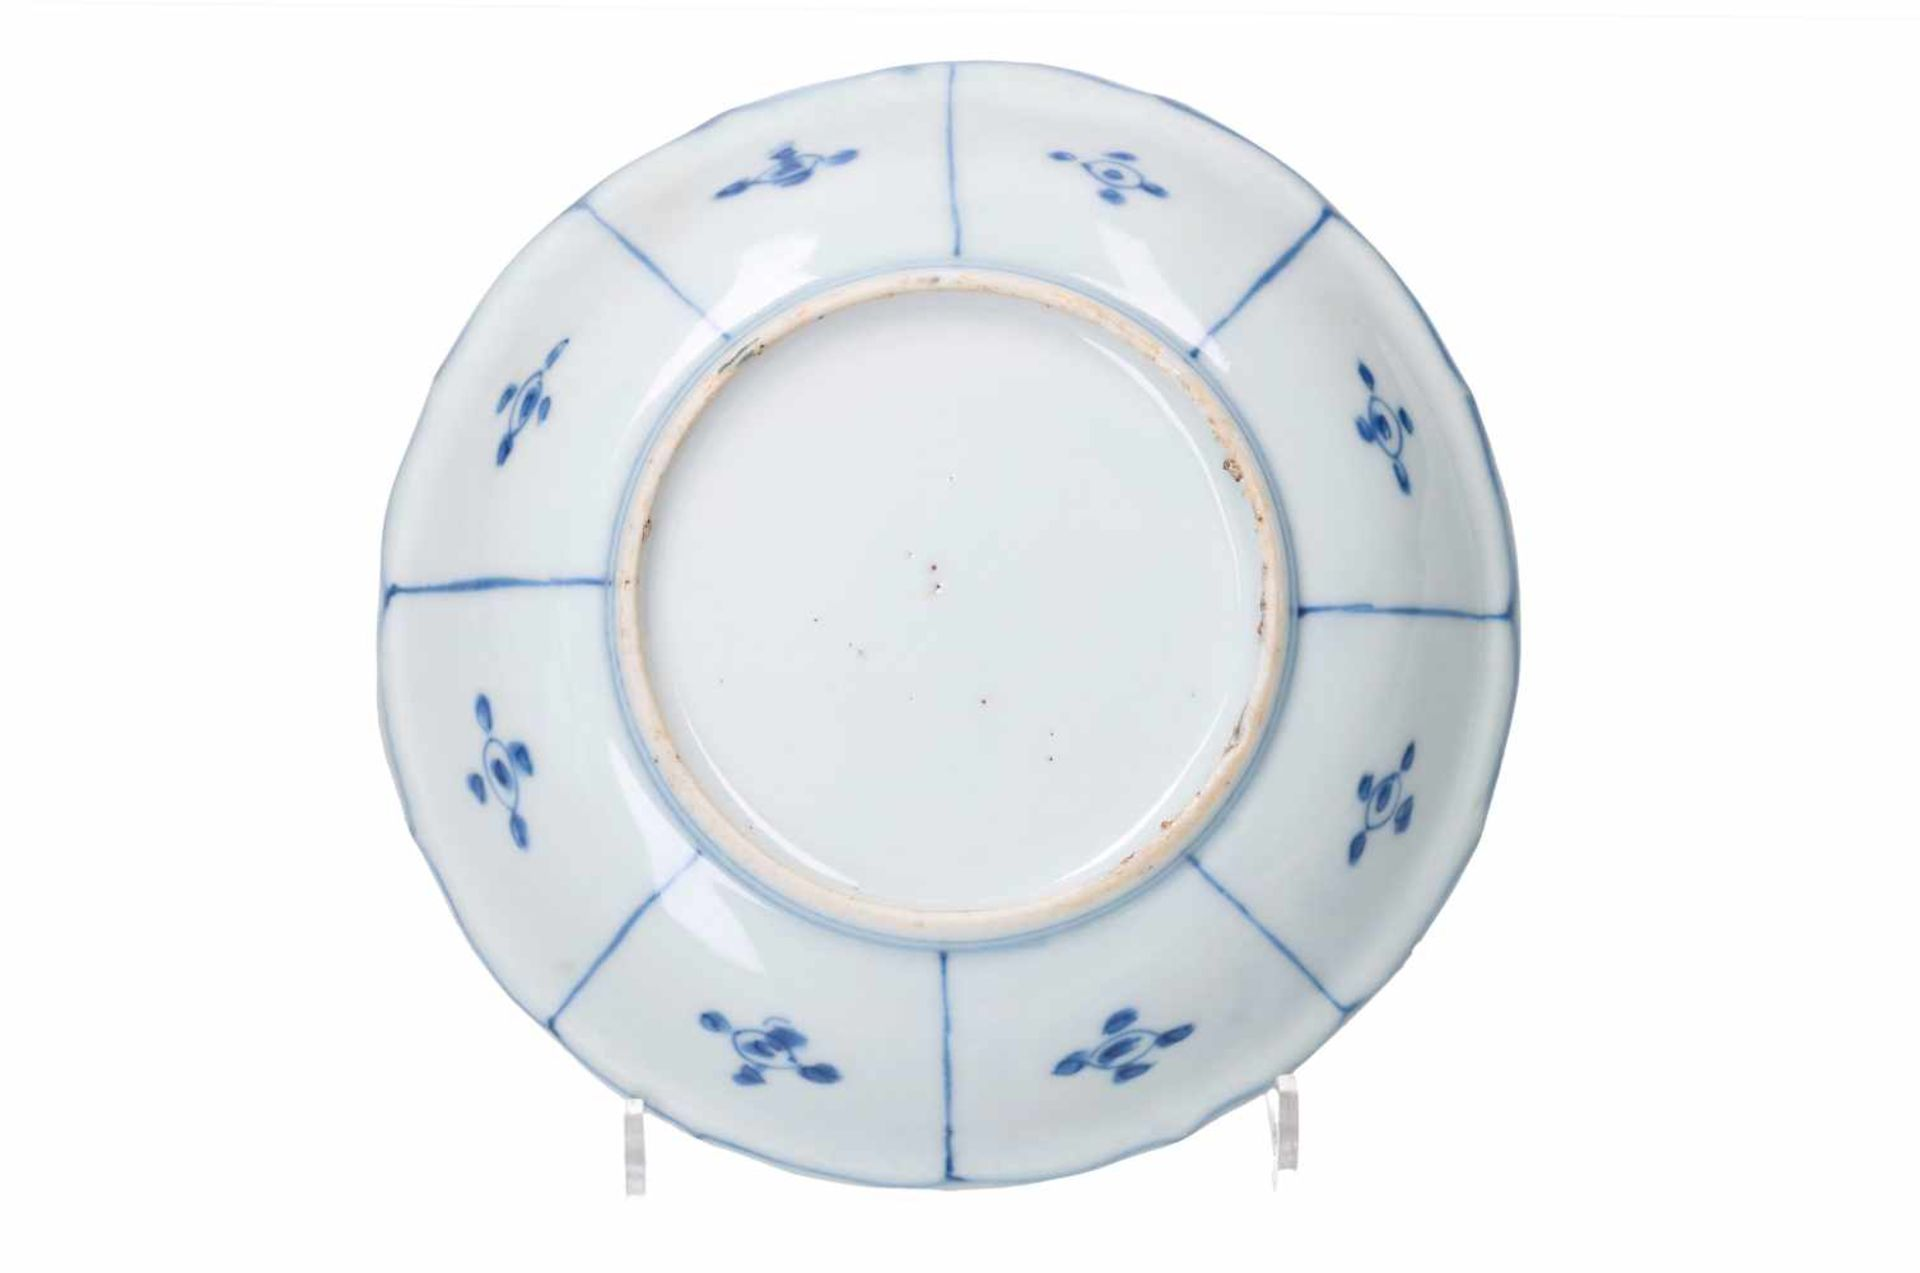 A blue and white 'kraak' porcelain dish, decorated with flowers, a butterfly and a cricket. - Bild 2 aus 3